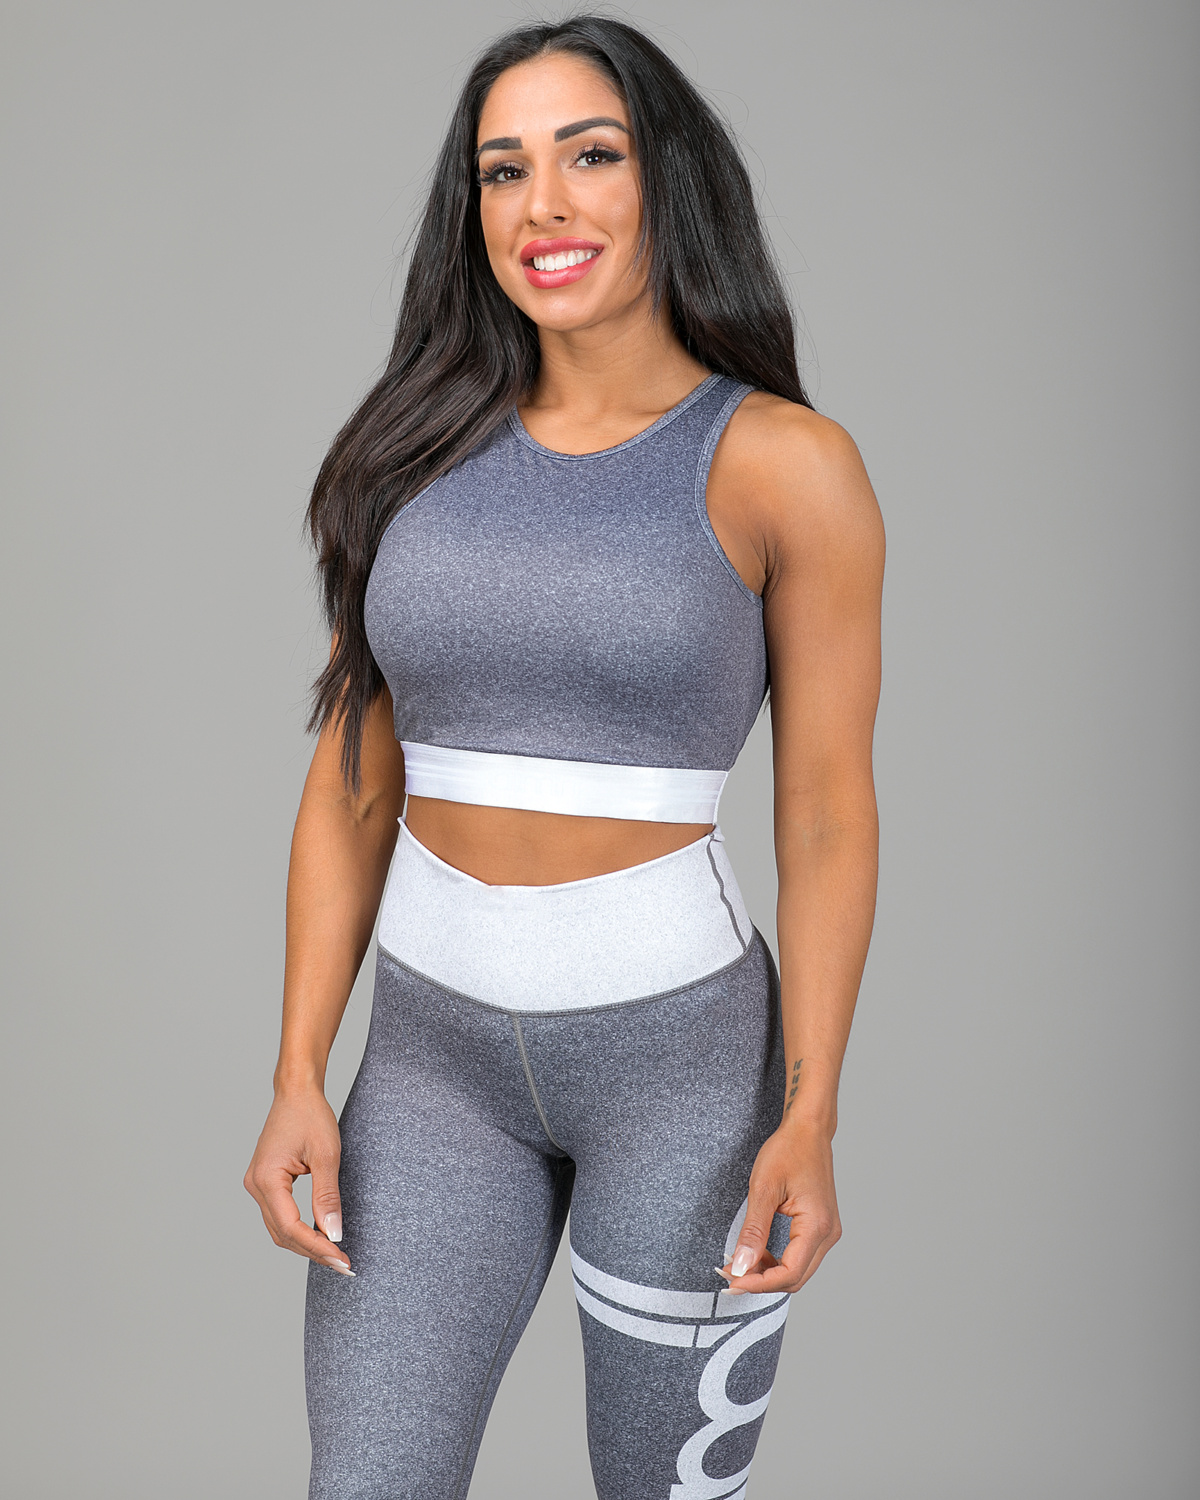 grey-melange-open-back-crop-top04